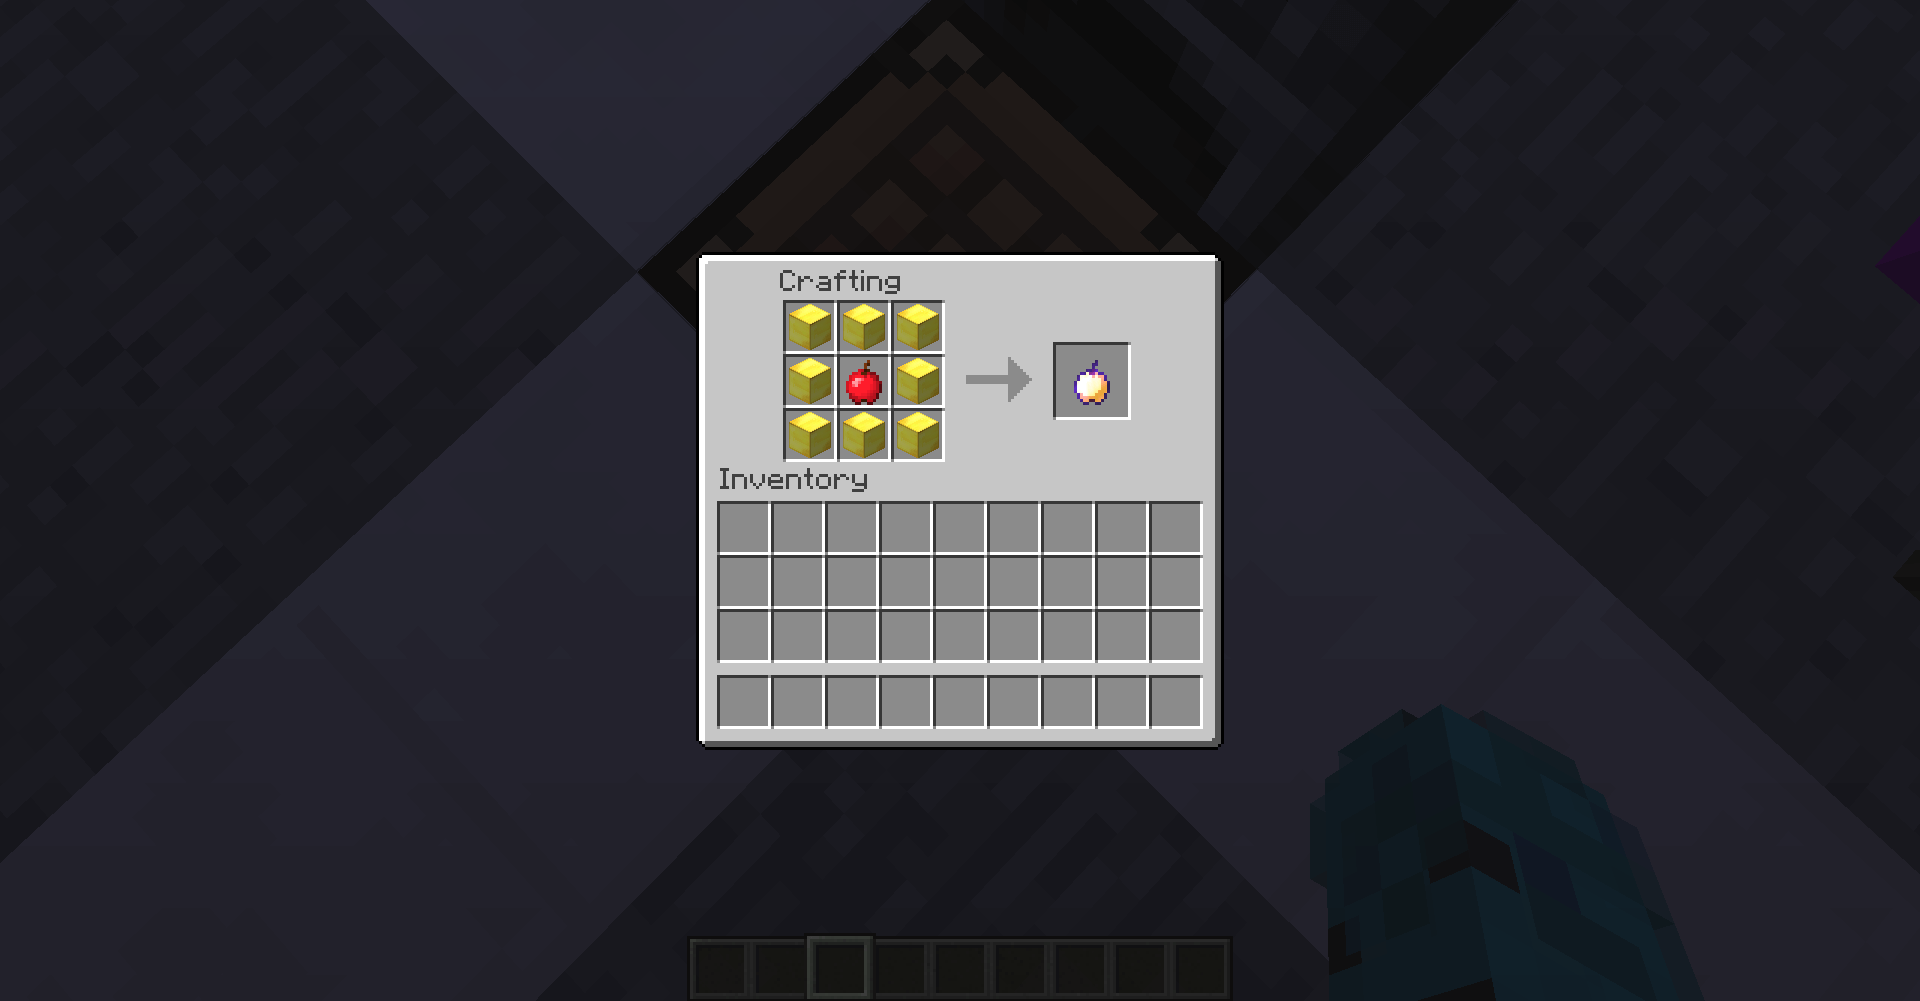 heaven-and-hell-mod-crafting-recipes-5.png